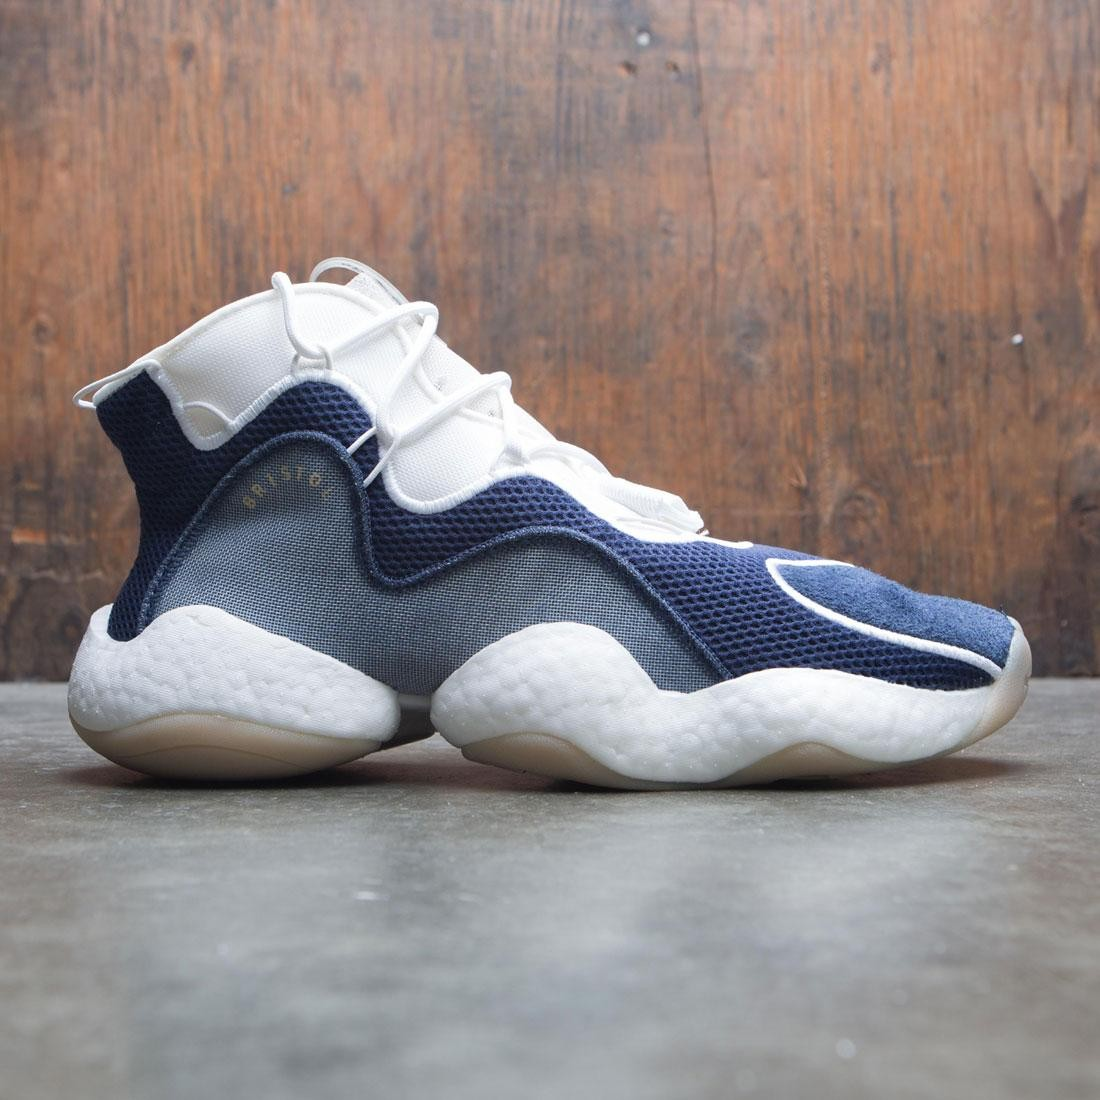 sports shoes 0d5a8 bdcbf Adidas x Bristol Studio Men Crazy BYW LVL I (navy / collegiate navy / cloud  white / footwear white)